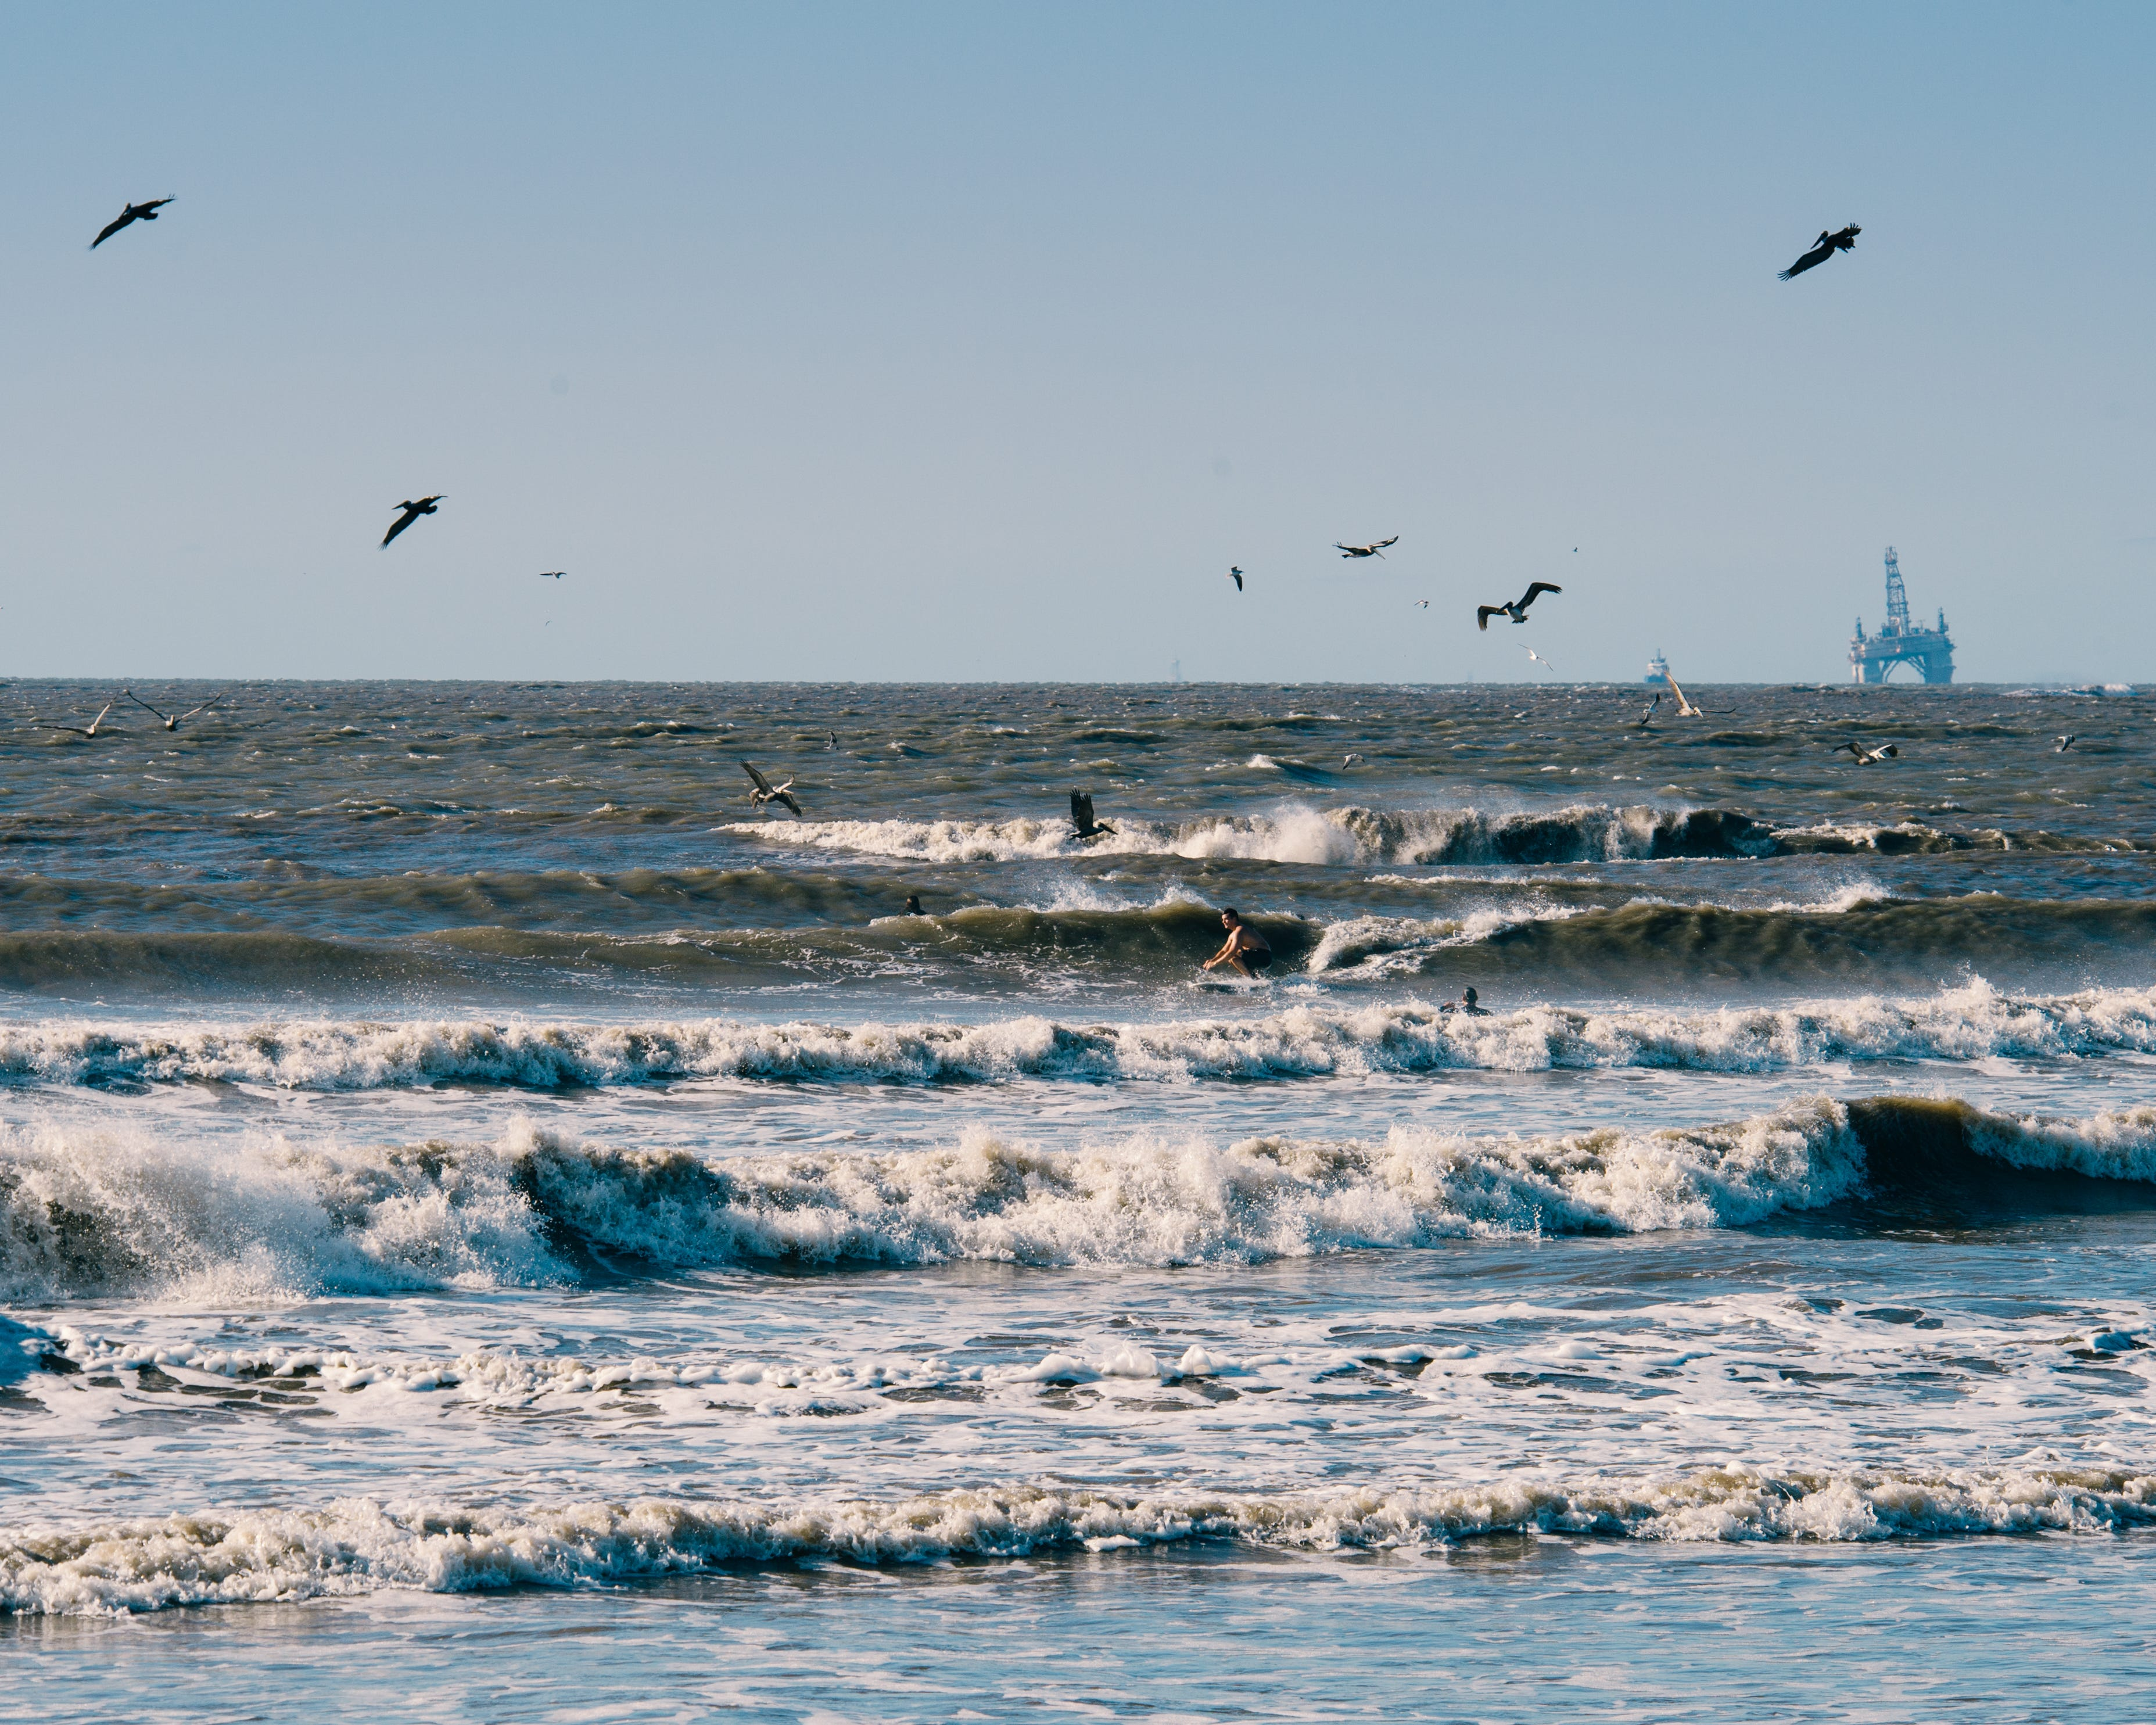 Grand Isle Surf: pelicans fly overhead as a surfer finds a ride between the white wash and an oil rig looms in the background